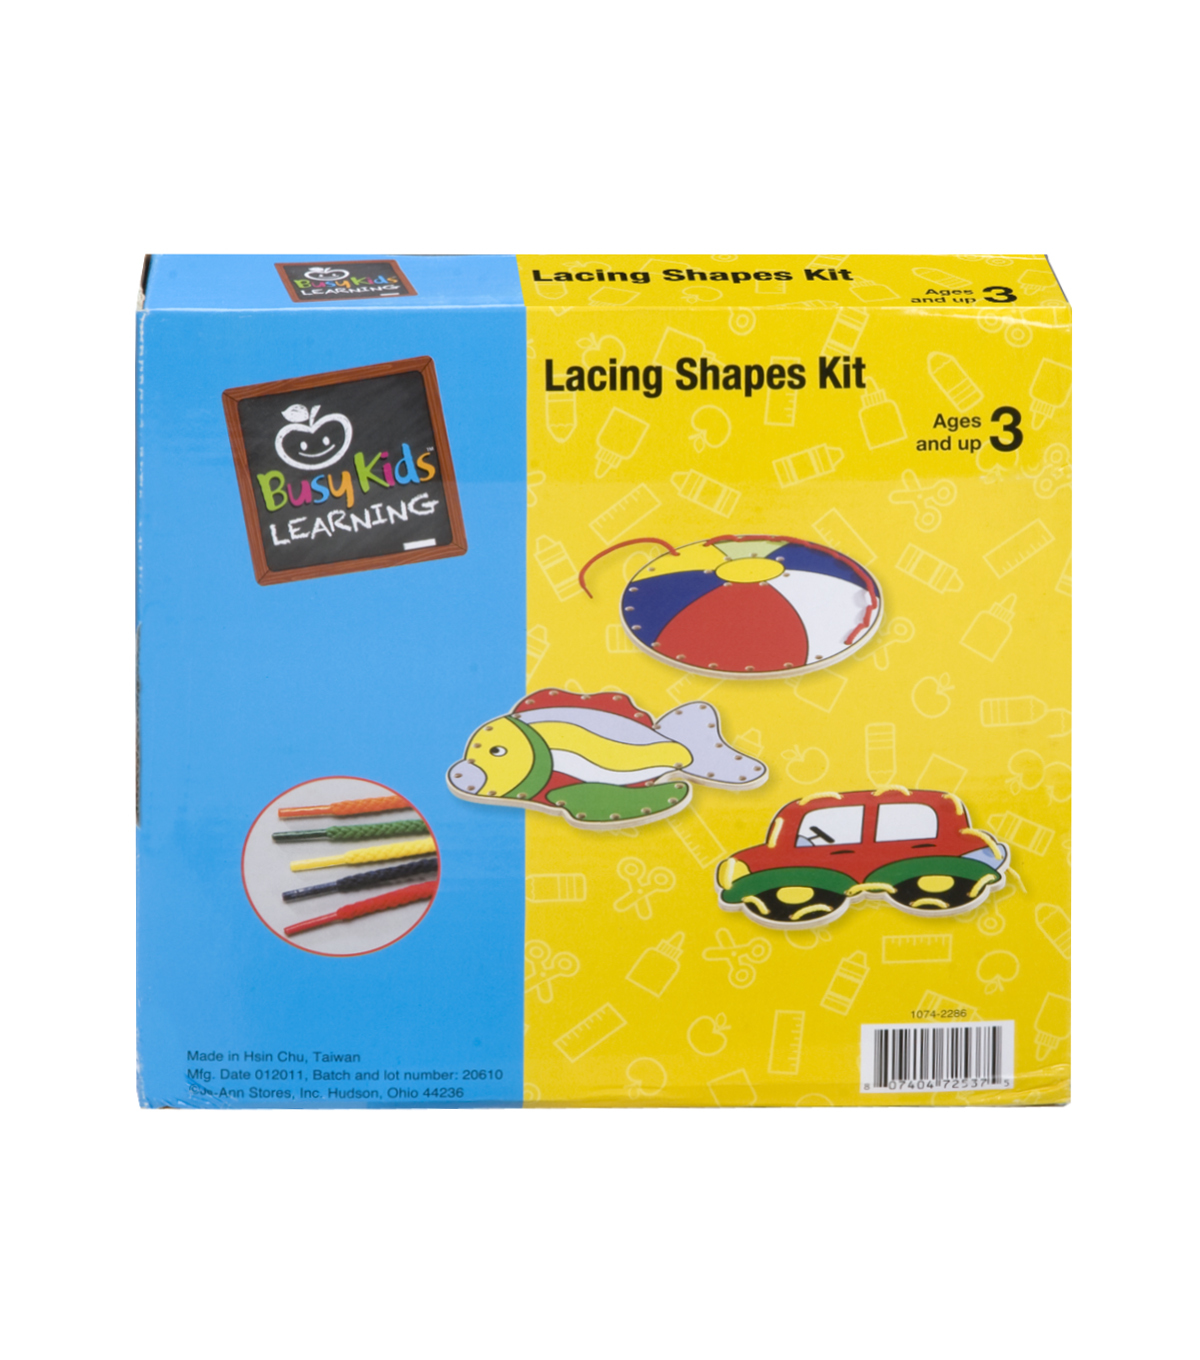 Busy Kids Learning Lacing Shapes Kit